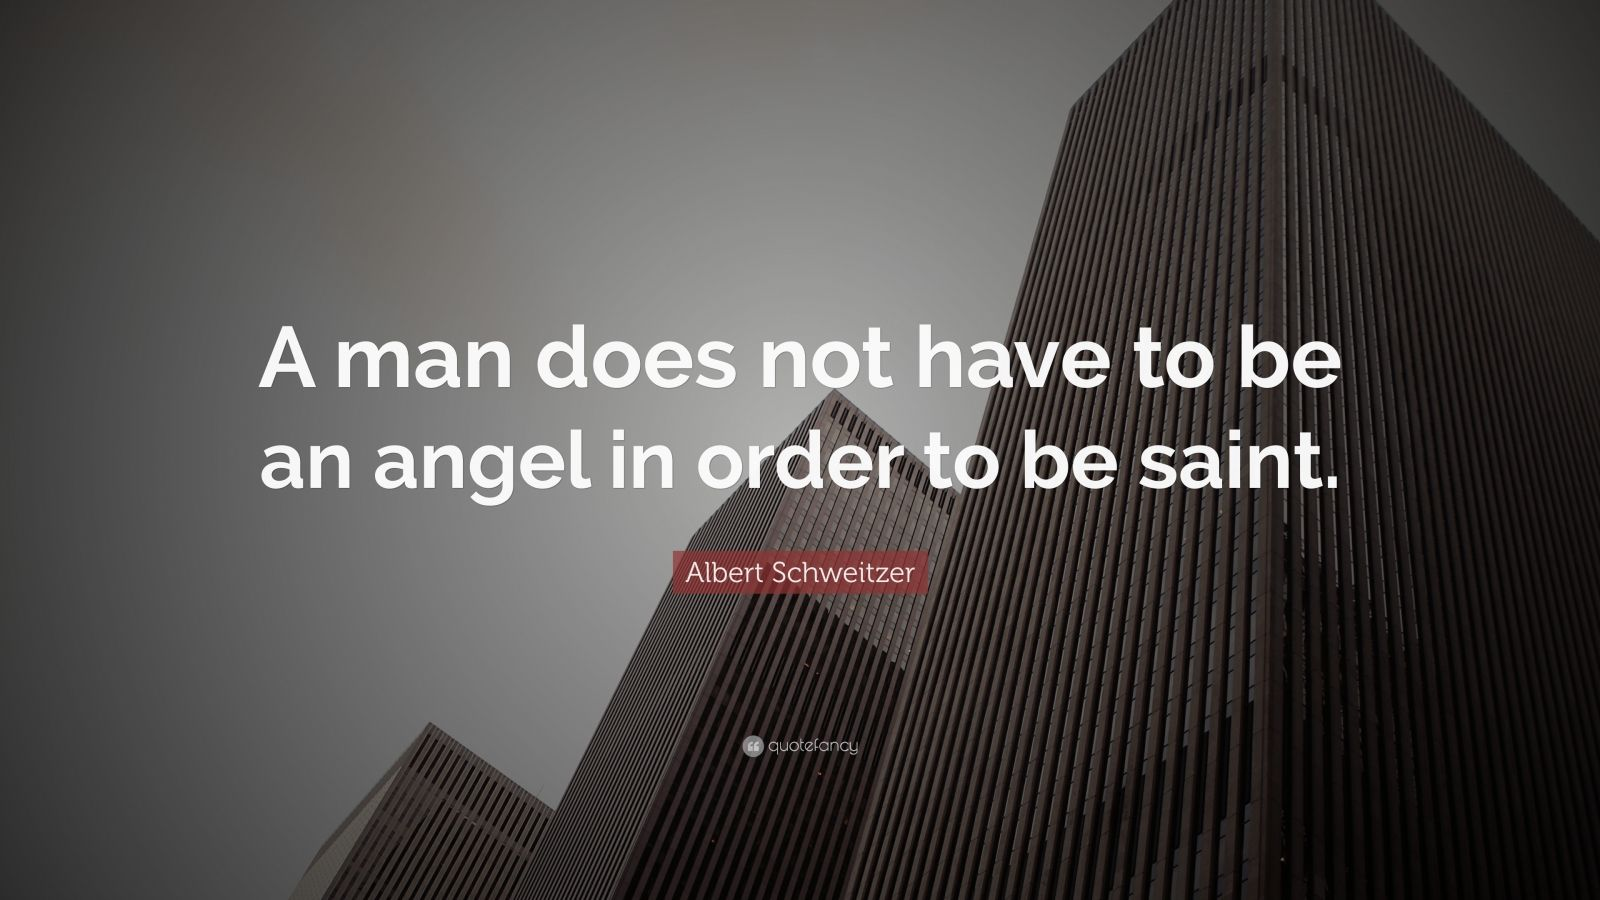 """Albert Schweitzer Quote: """"A man does not have to be an angel in order to be saint."""""""